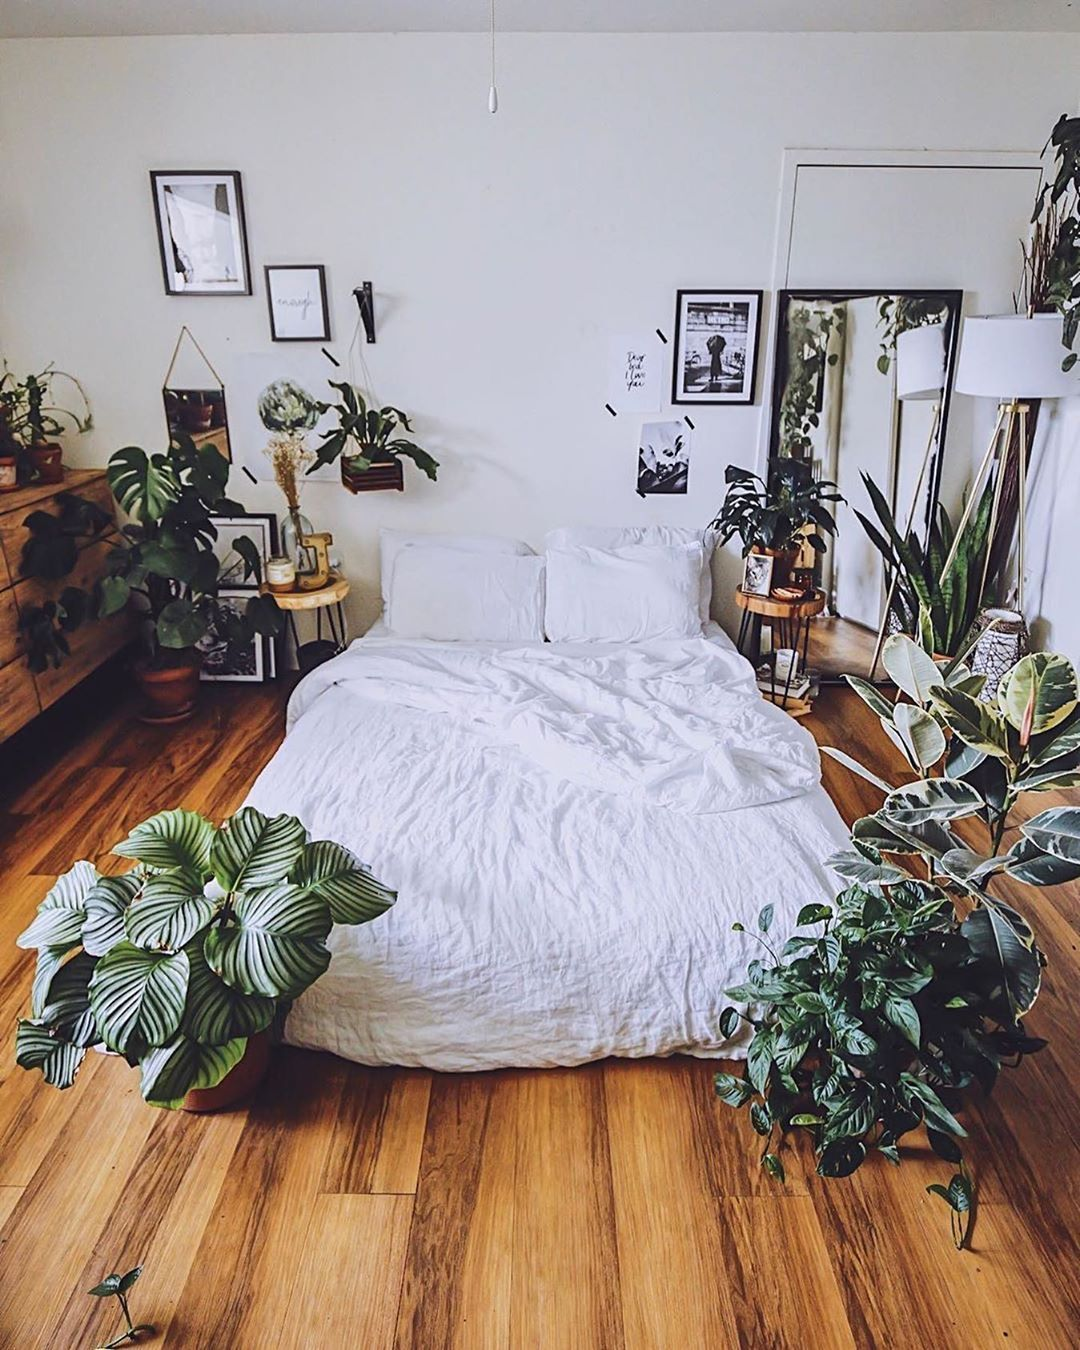 "Photo of Plants Spark Joy on Instagram: ""Plants can help you sleep 💤 better at night. Do y'all agree? 🤔🌱✨ #plantssparkjoy  via @jungleinaroom"""